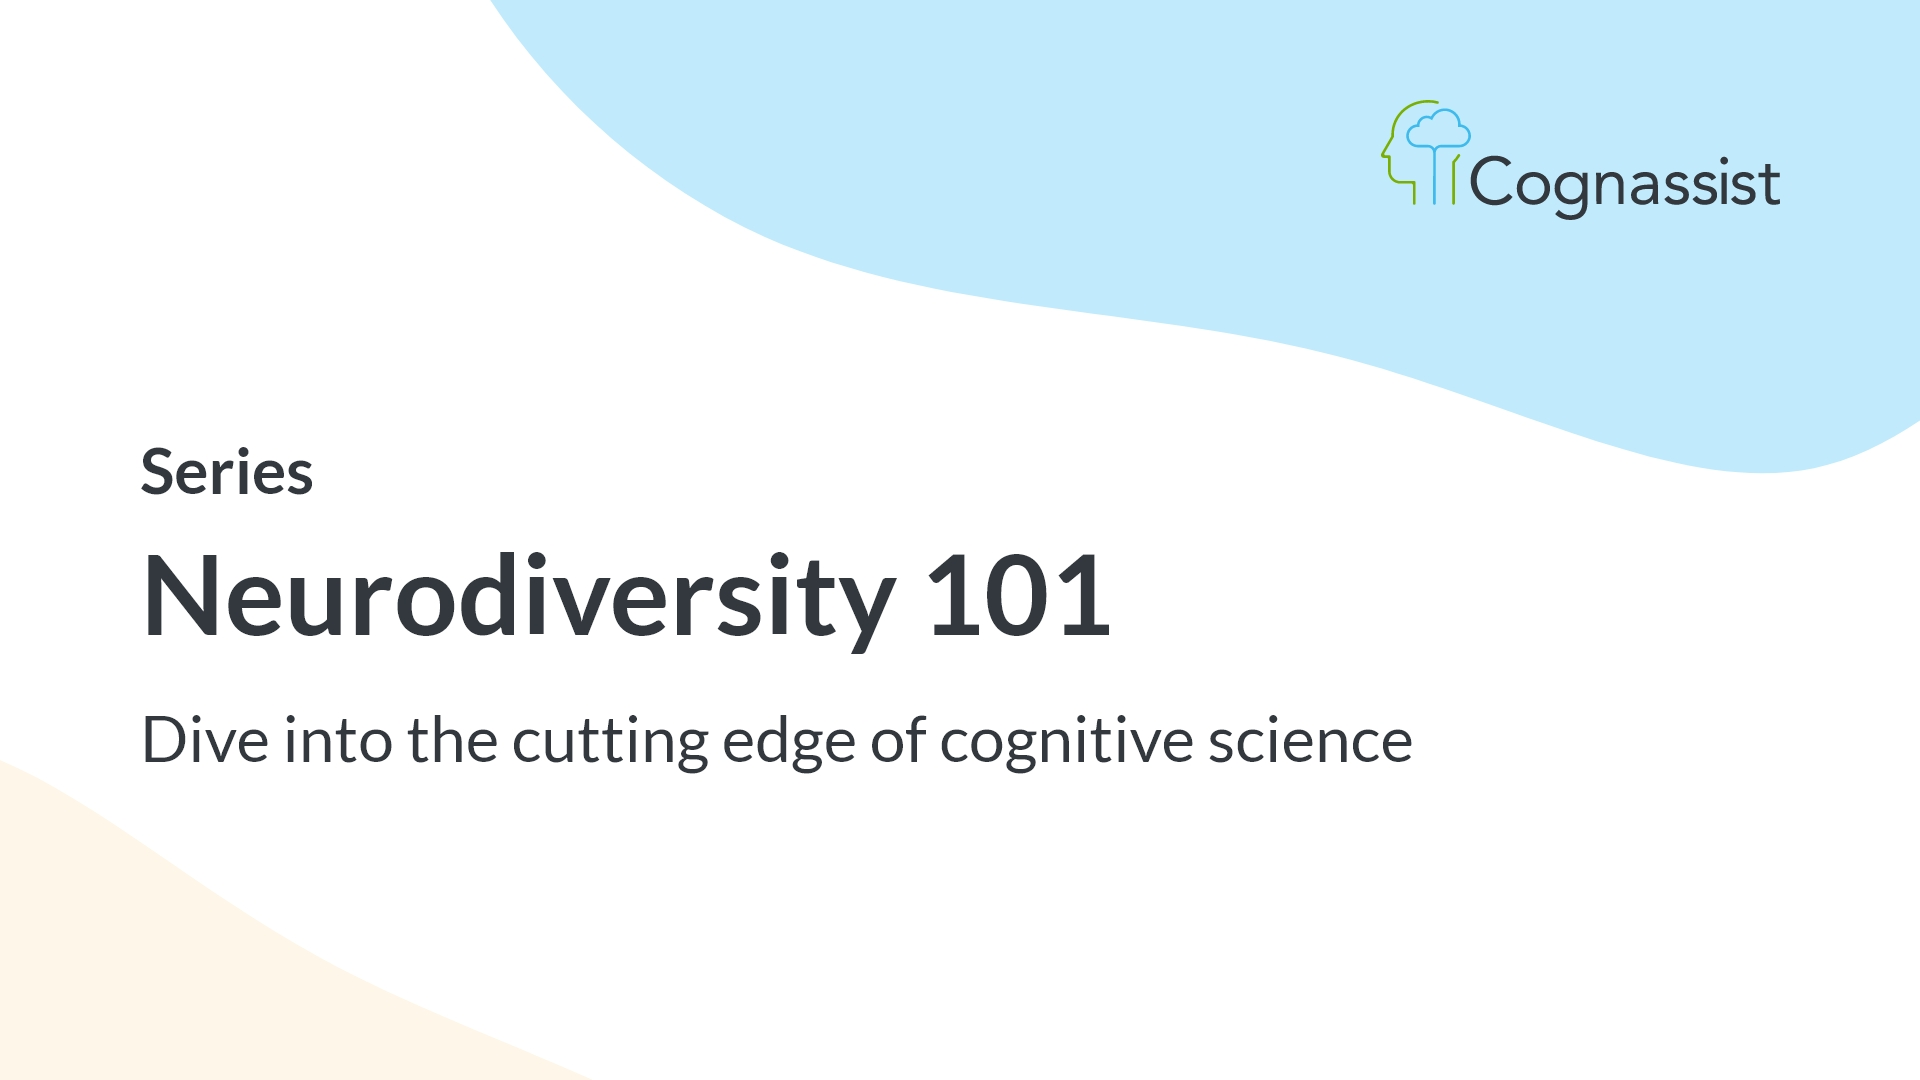 neurodiversity 101 series